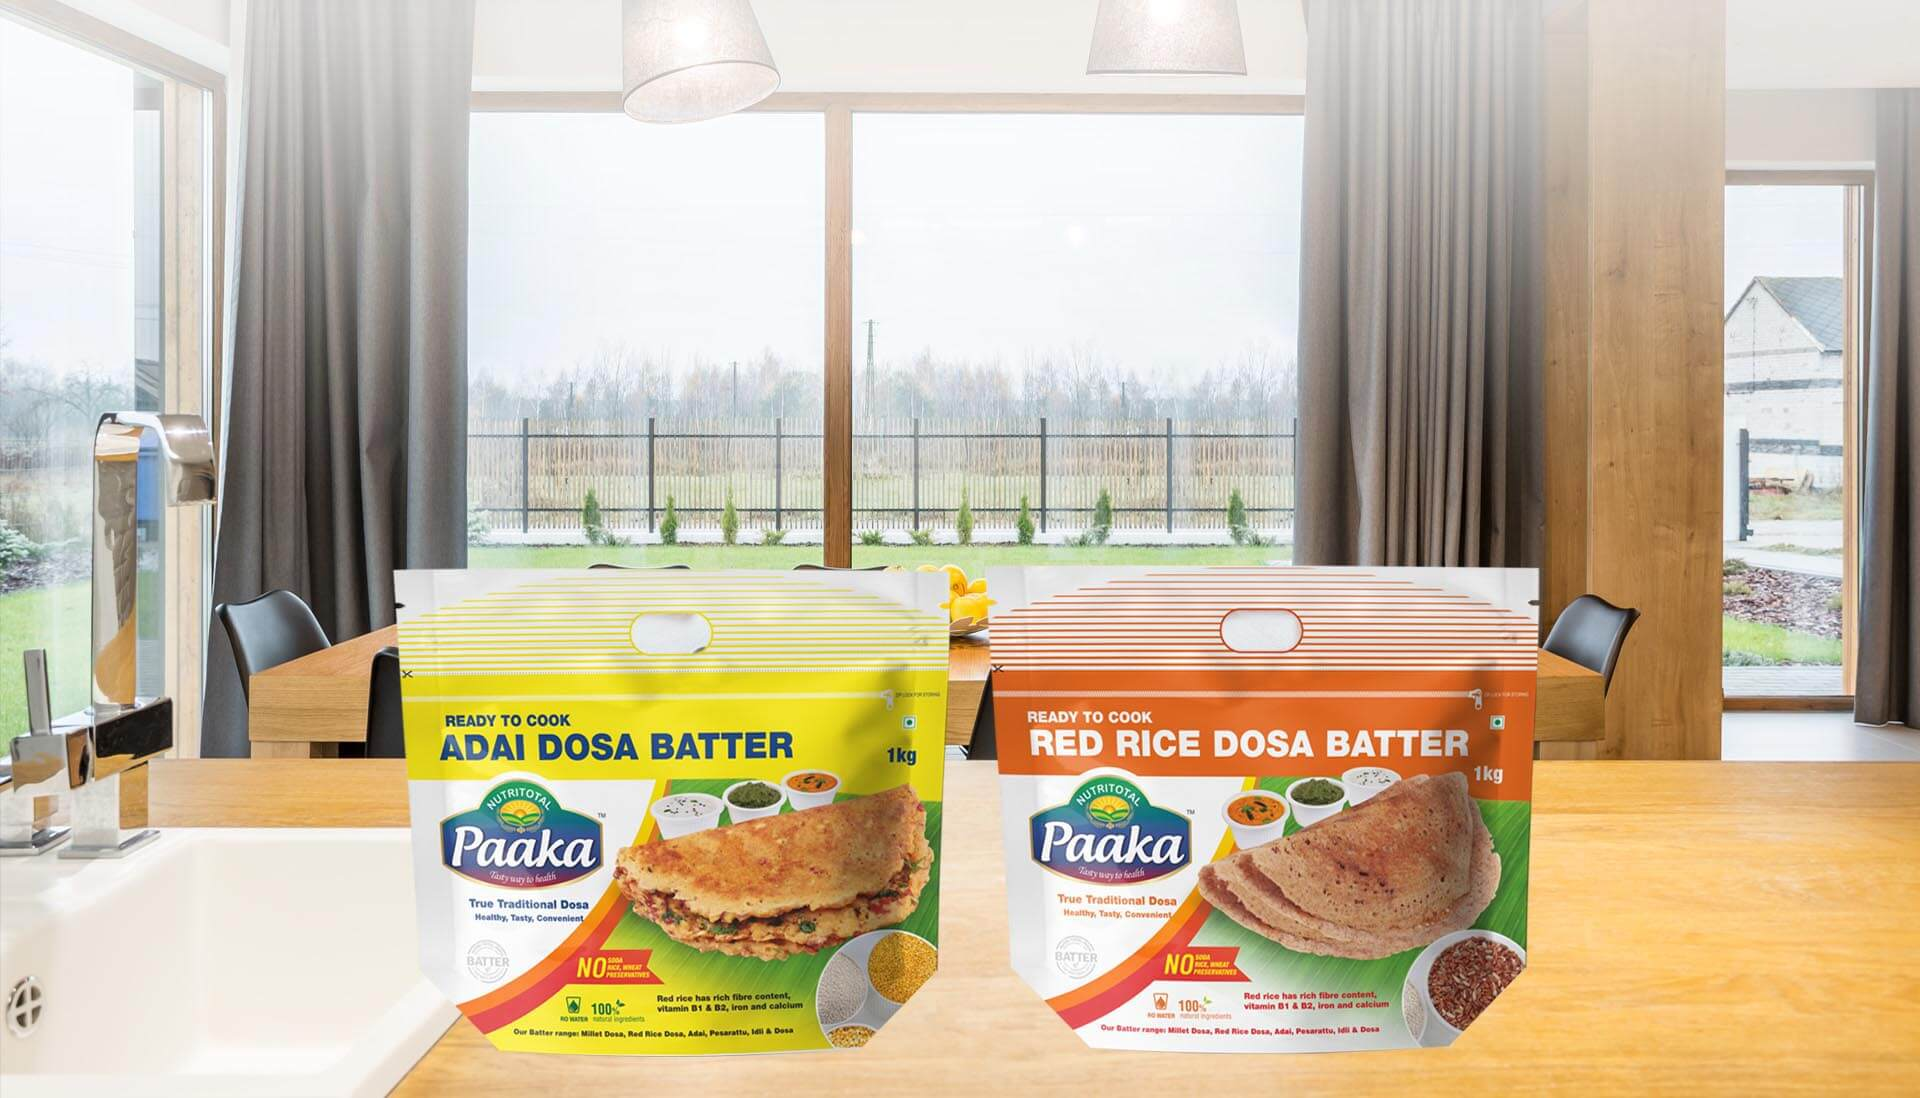 Adai Dosa Batter, Red Rice Dosa Batter